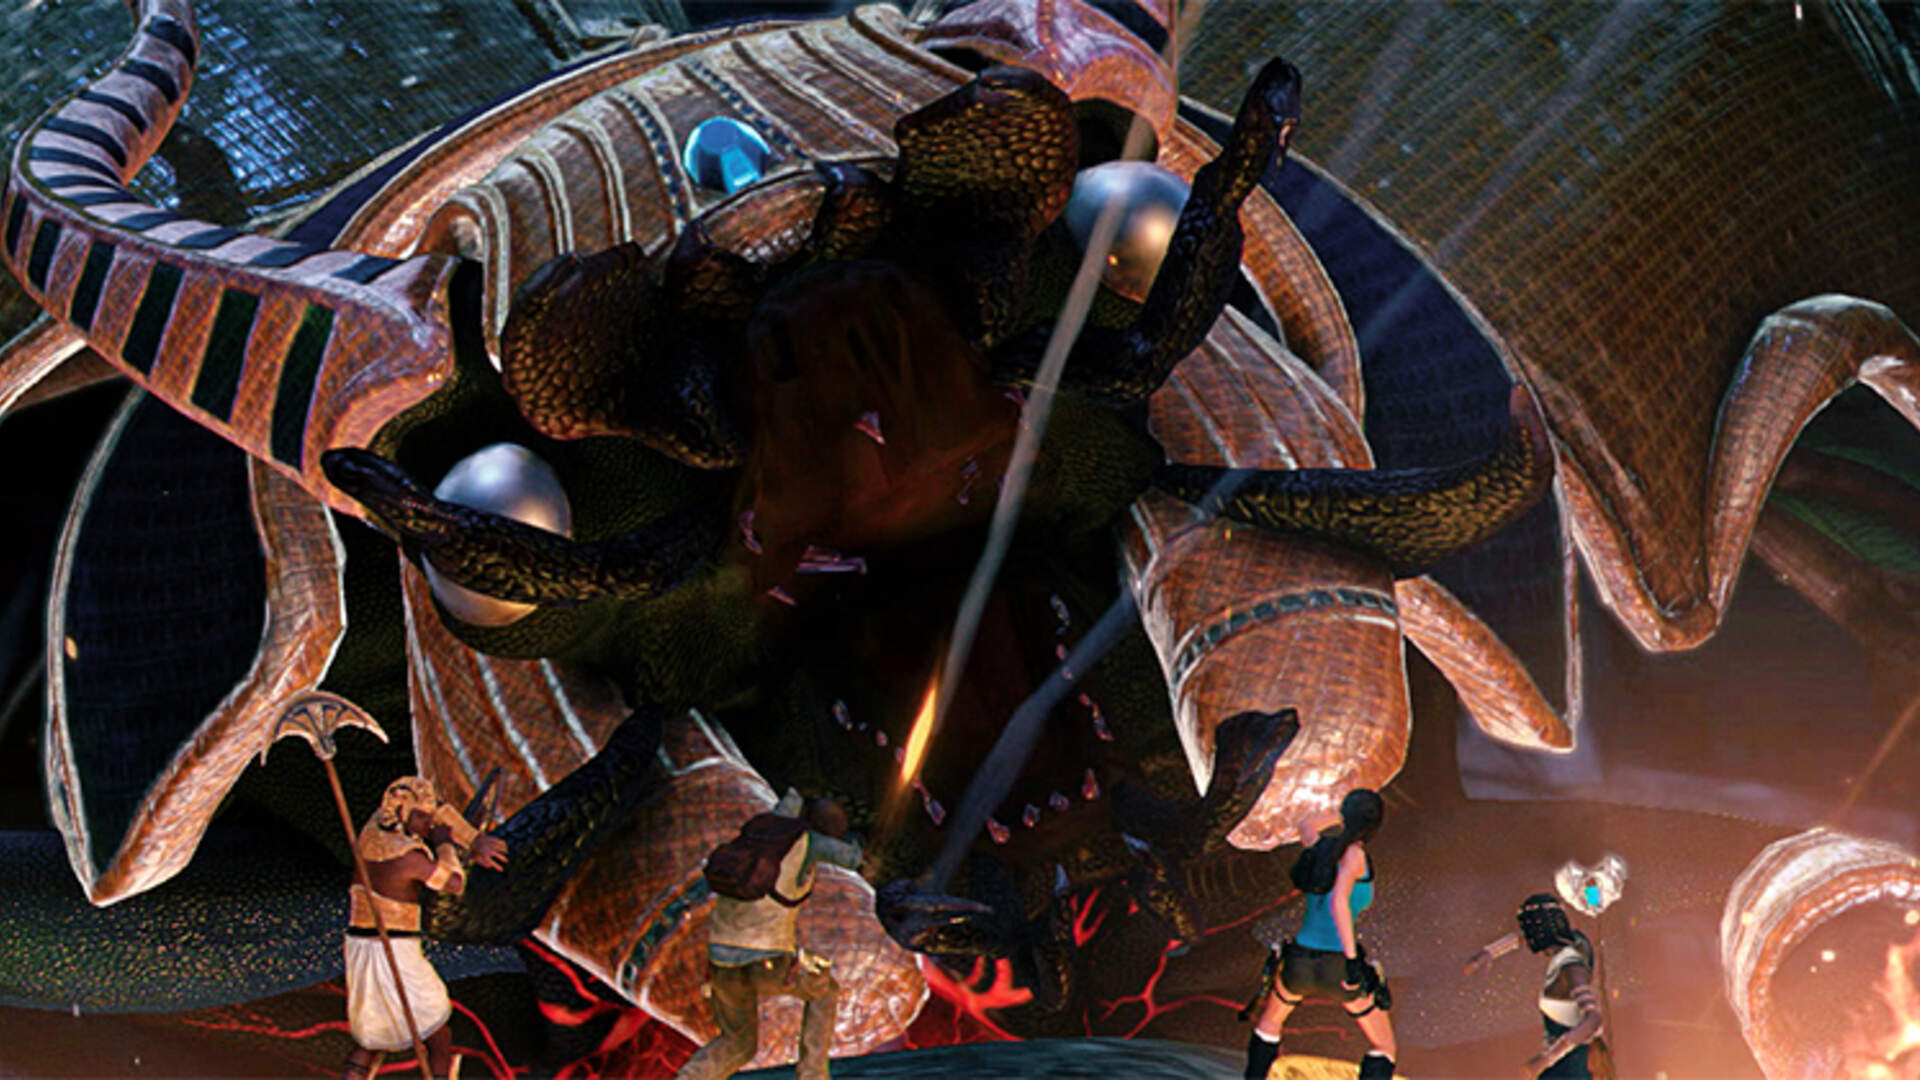 PAX Prime 2014: Lara Croft and the Temple of Osiris Revisits Tomb Raider's Most Surprising Reboot